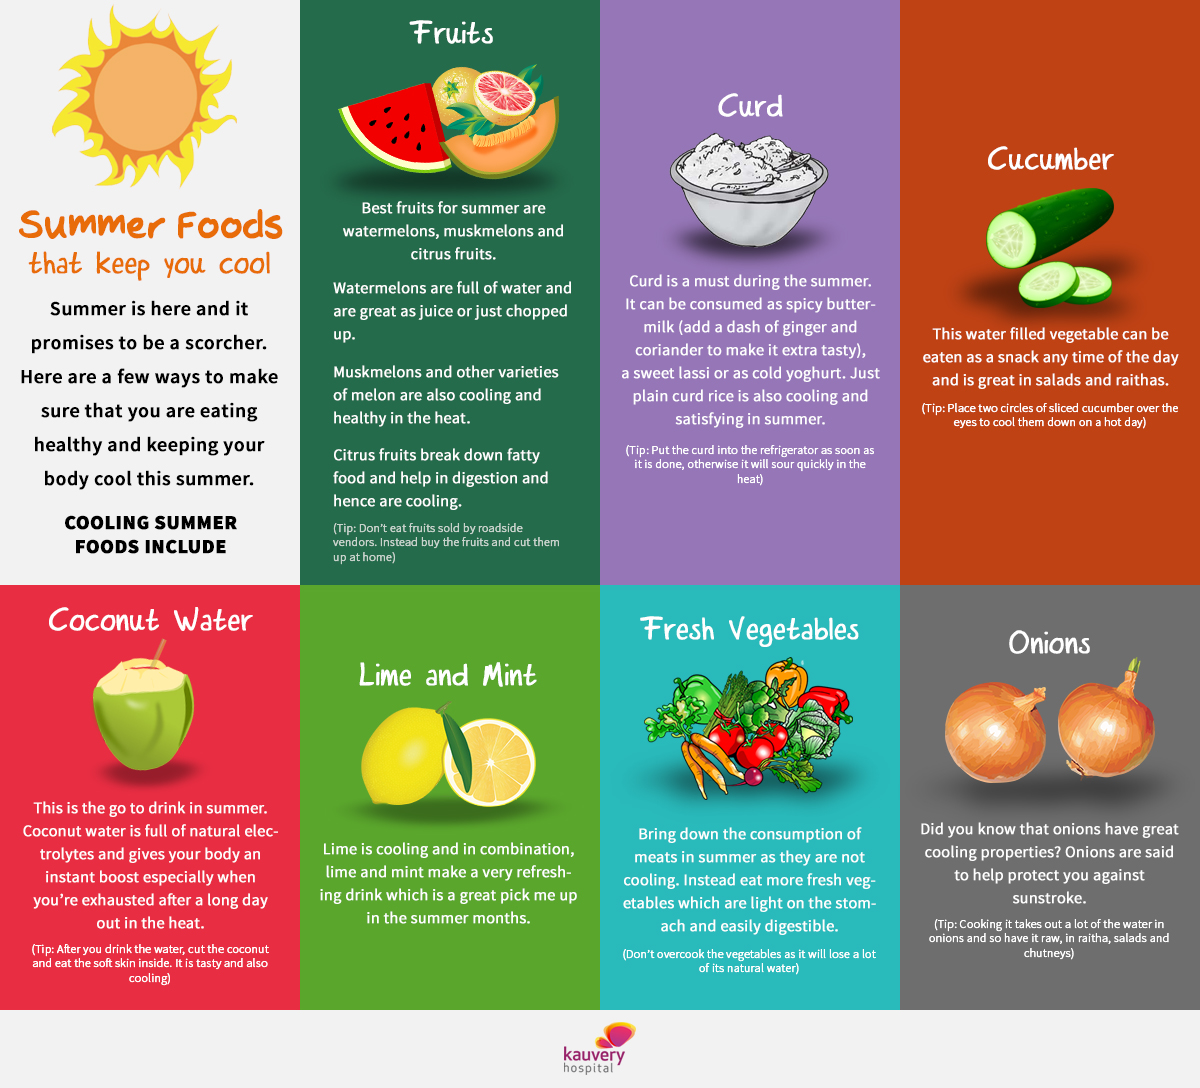 Summer foods that keep you cool